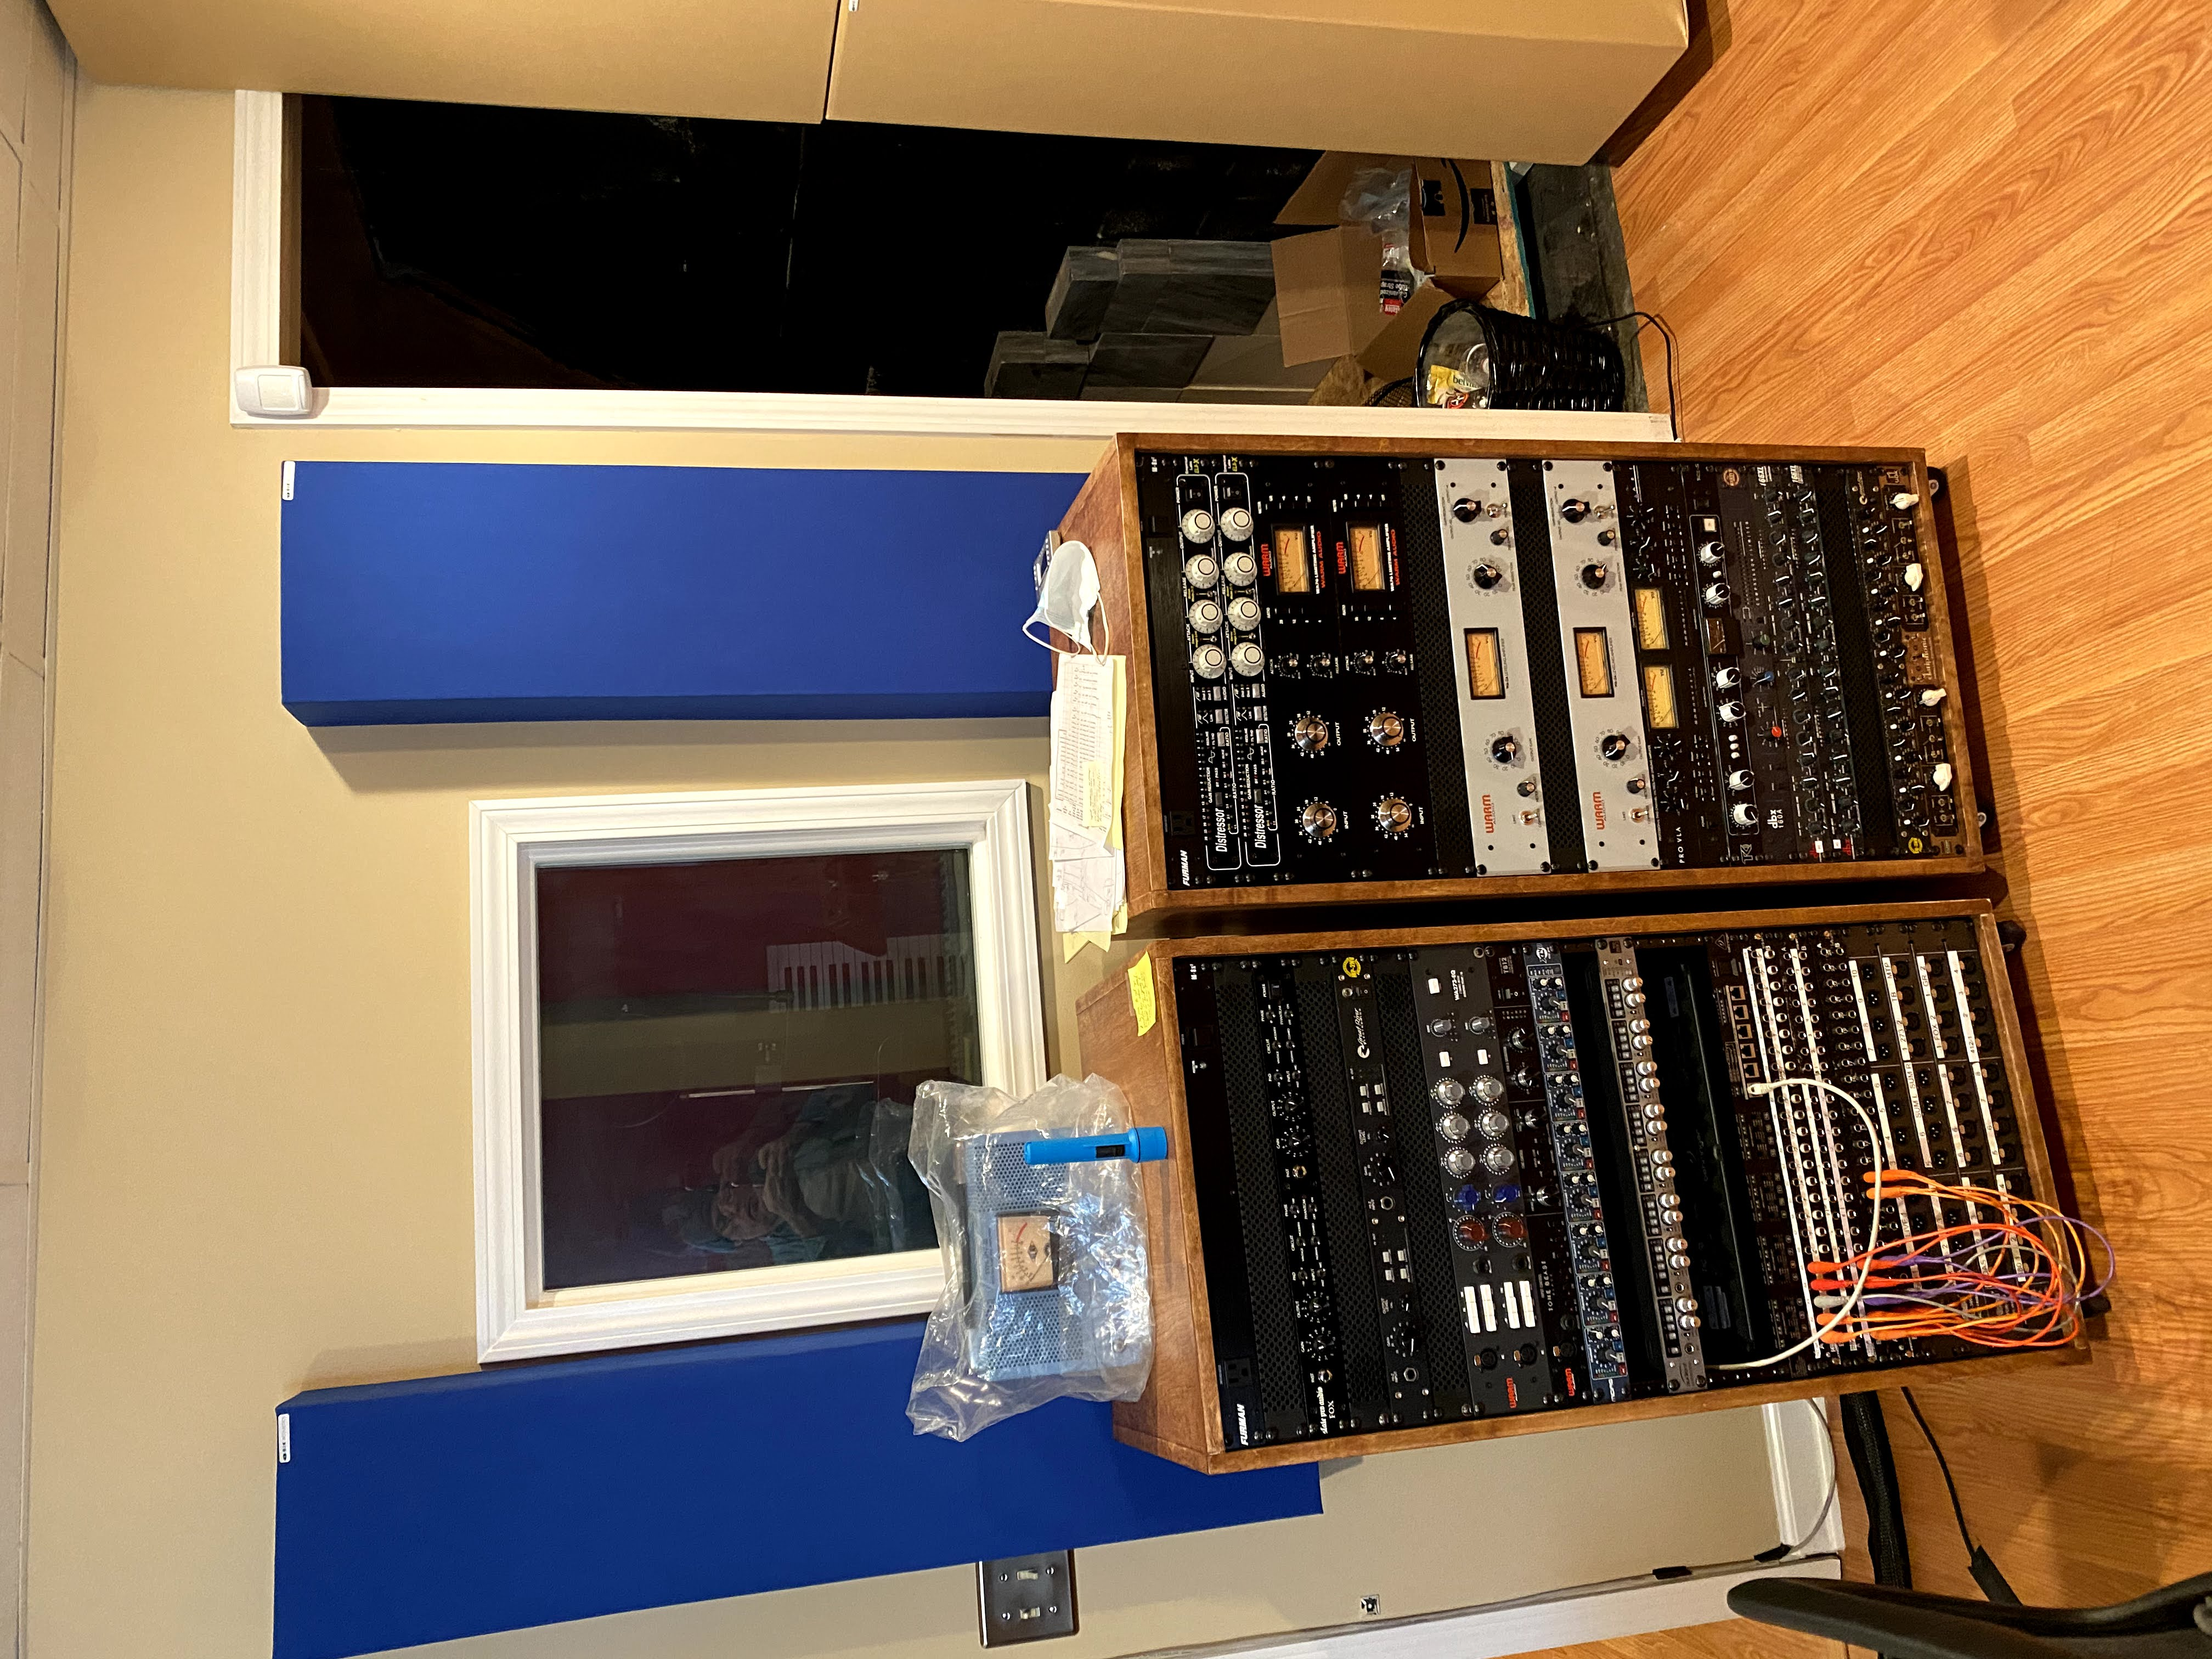 Preamps/Outboard